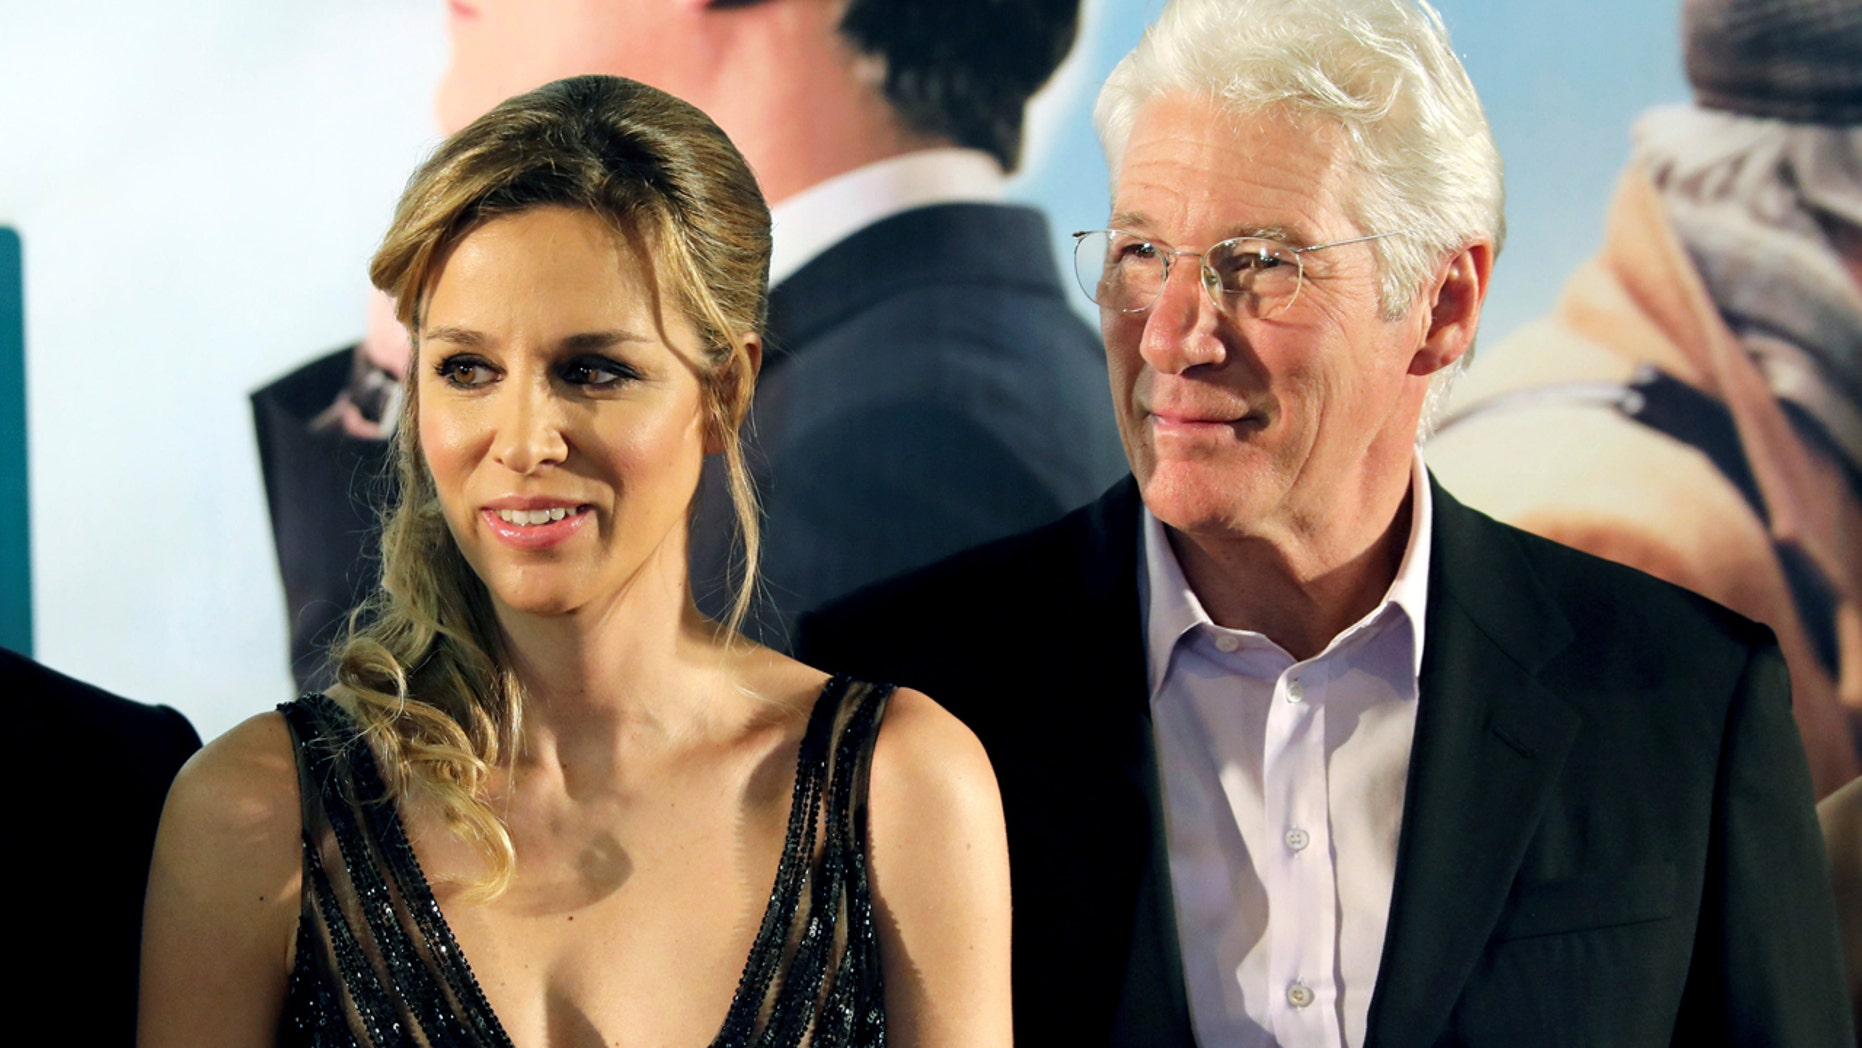 Richard Gere and his new wife, Alejandra Silva, welcomed their first child together, confirms Fox News.